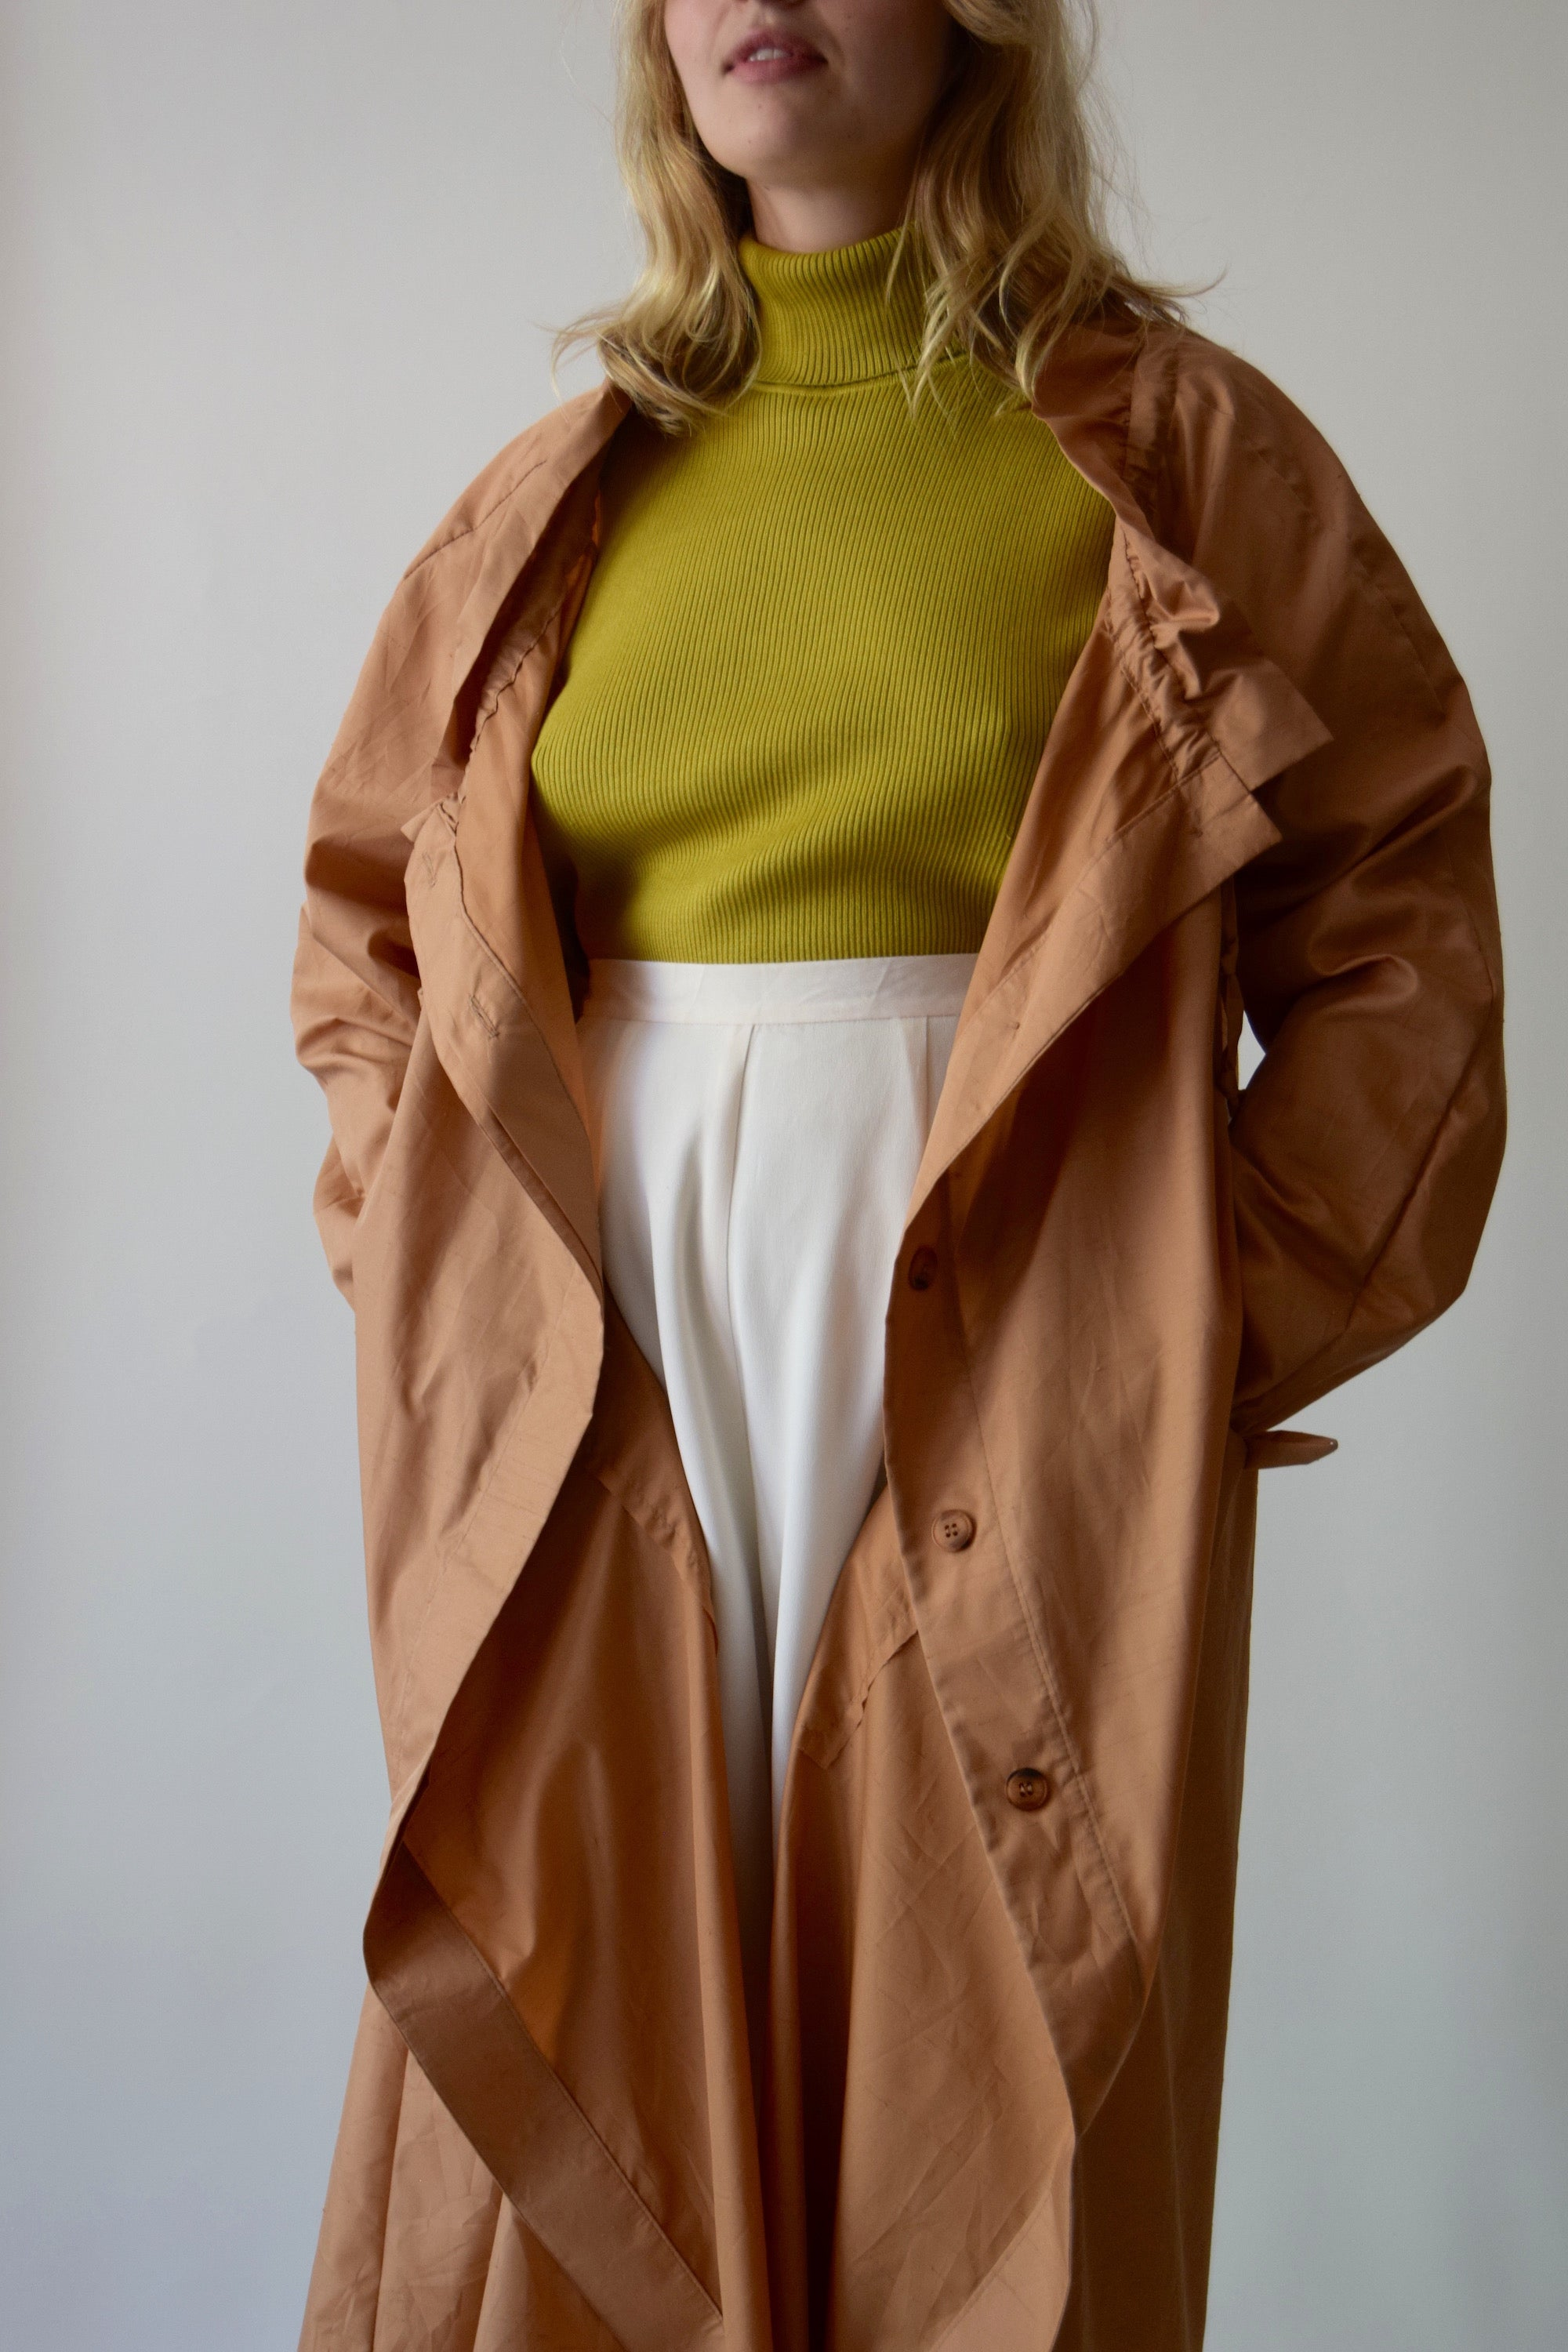 Vintage Betty Rose Amber Glow Trench Coat FREE SHIPPING TO THE U.S.